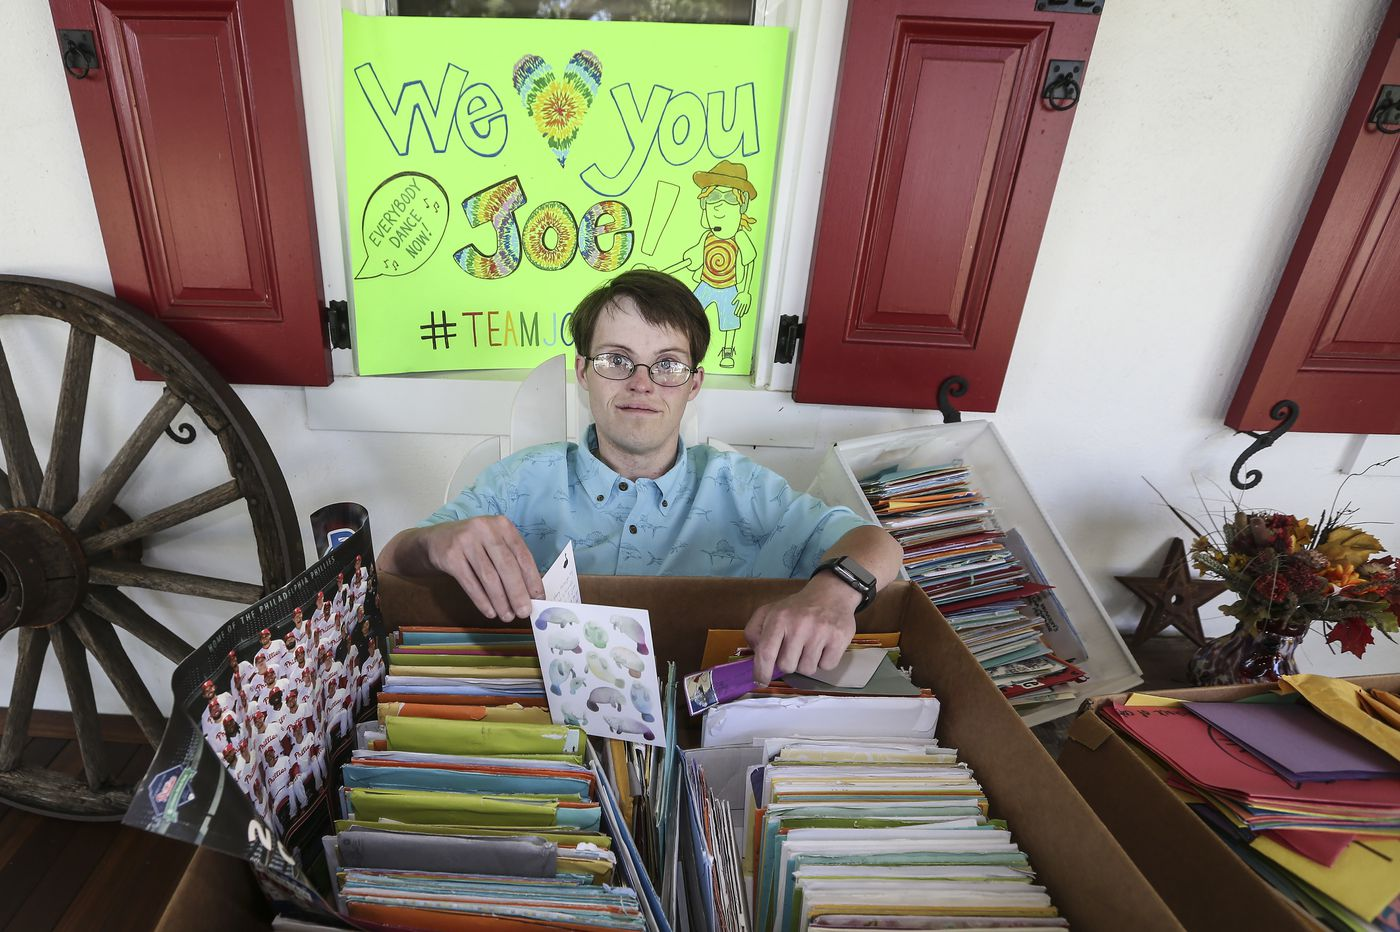 Local Man with Down Syndrome Awaiting Double-Organ Transplant Receives Thousands of Cards from Strangers